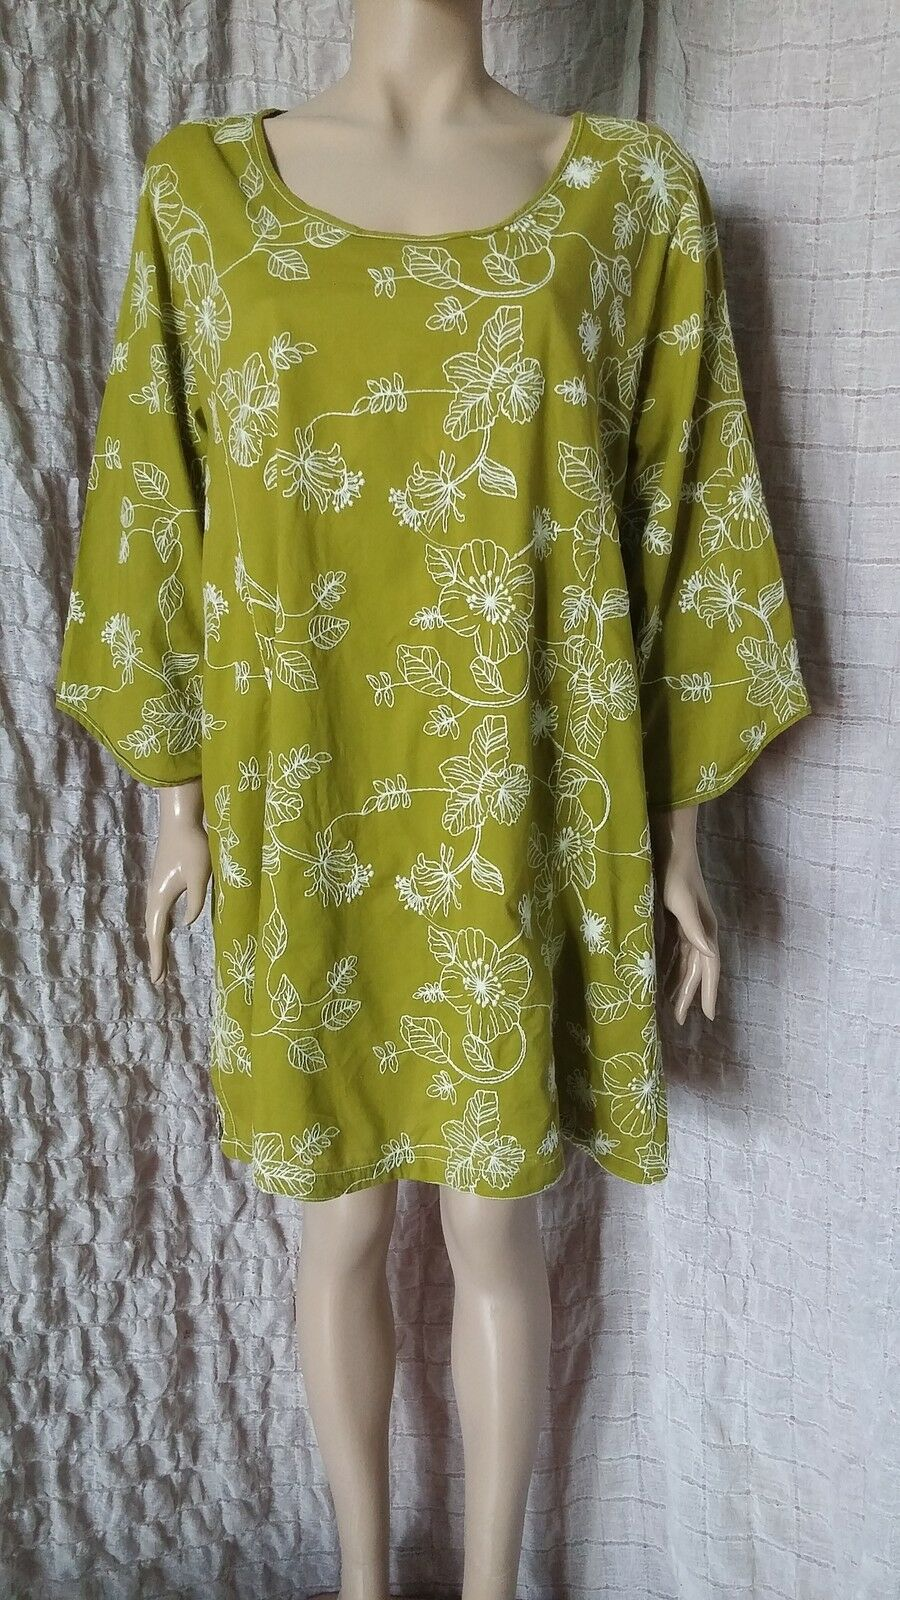 Uno Danmark cotton green with  white floral embroidered dress tunic size 3, XL